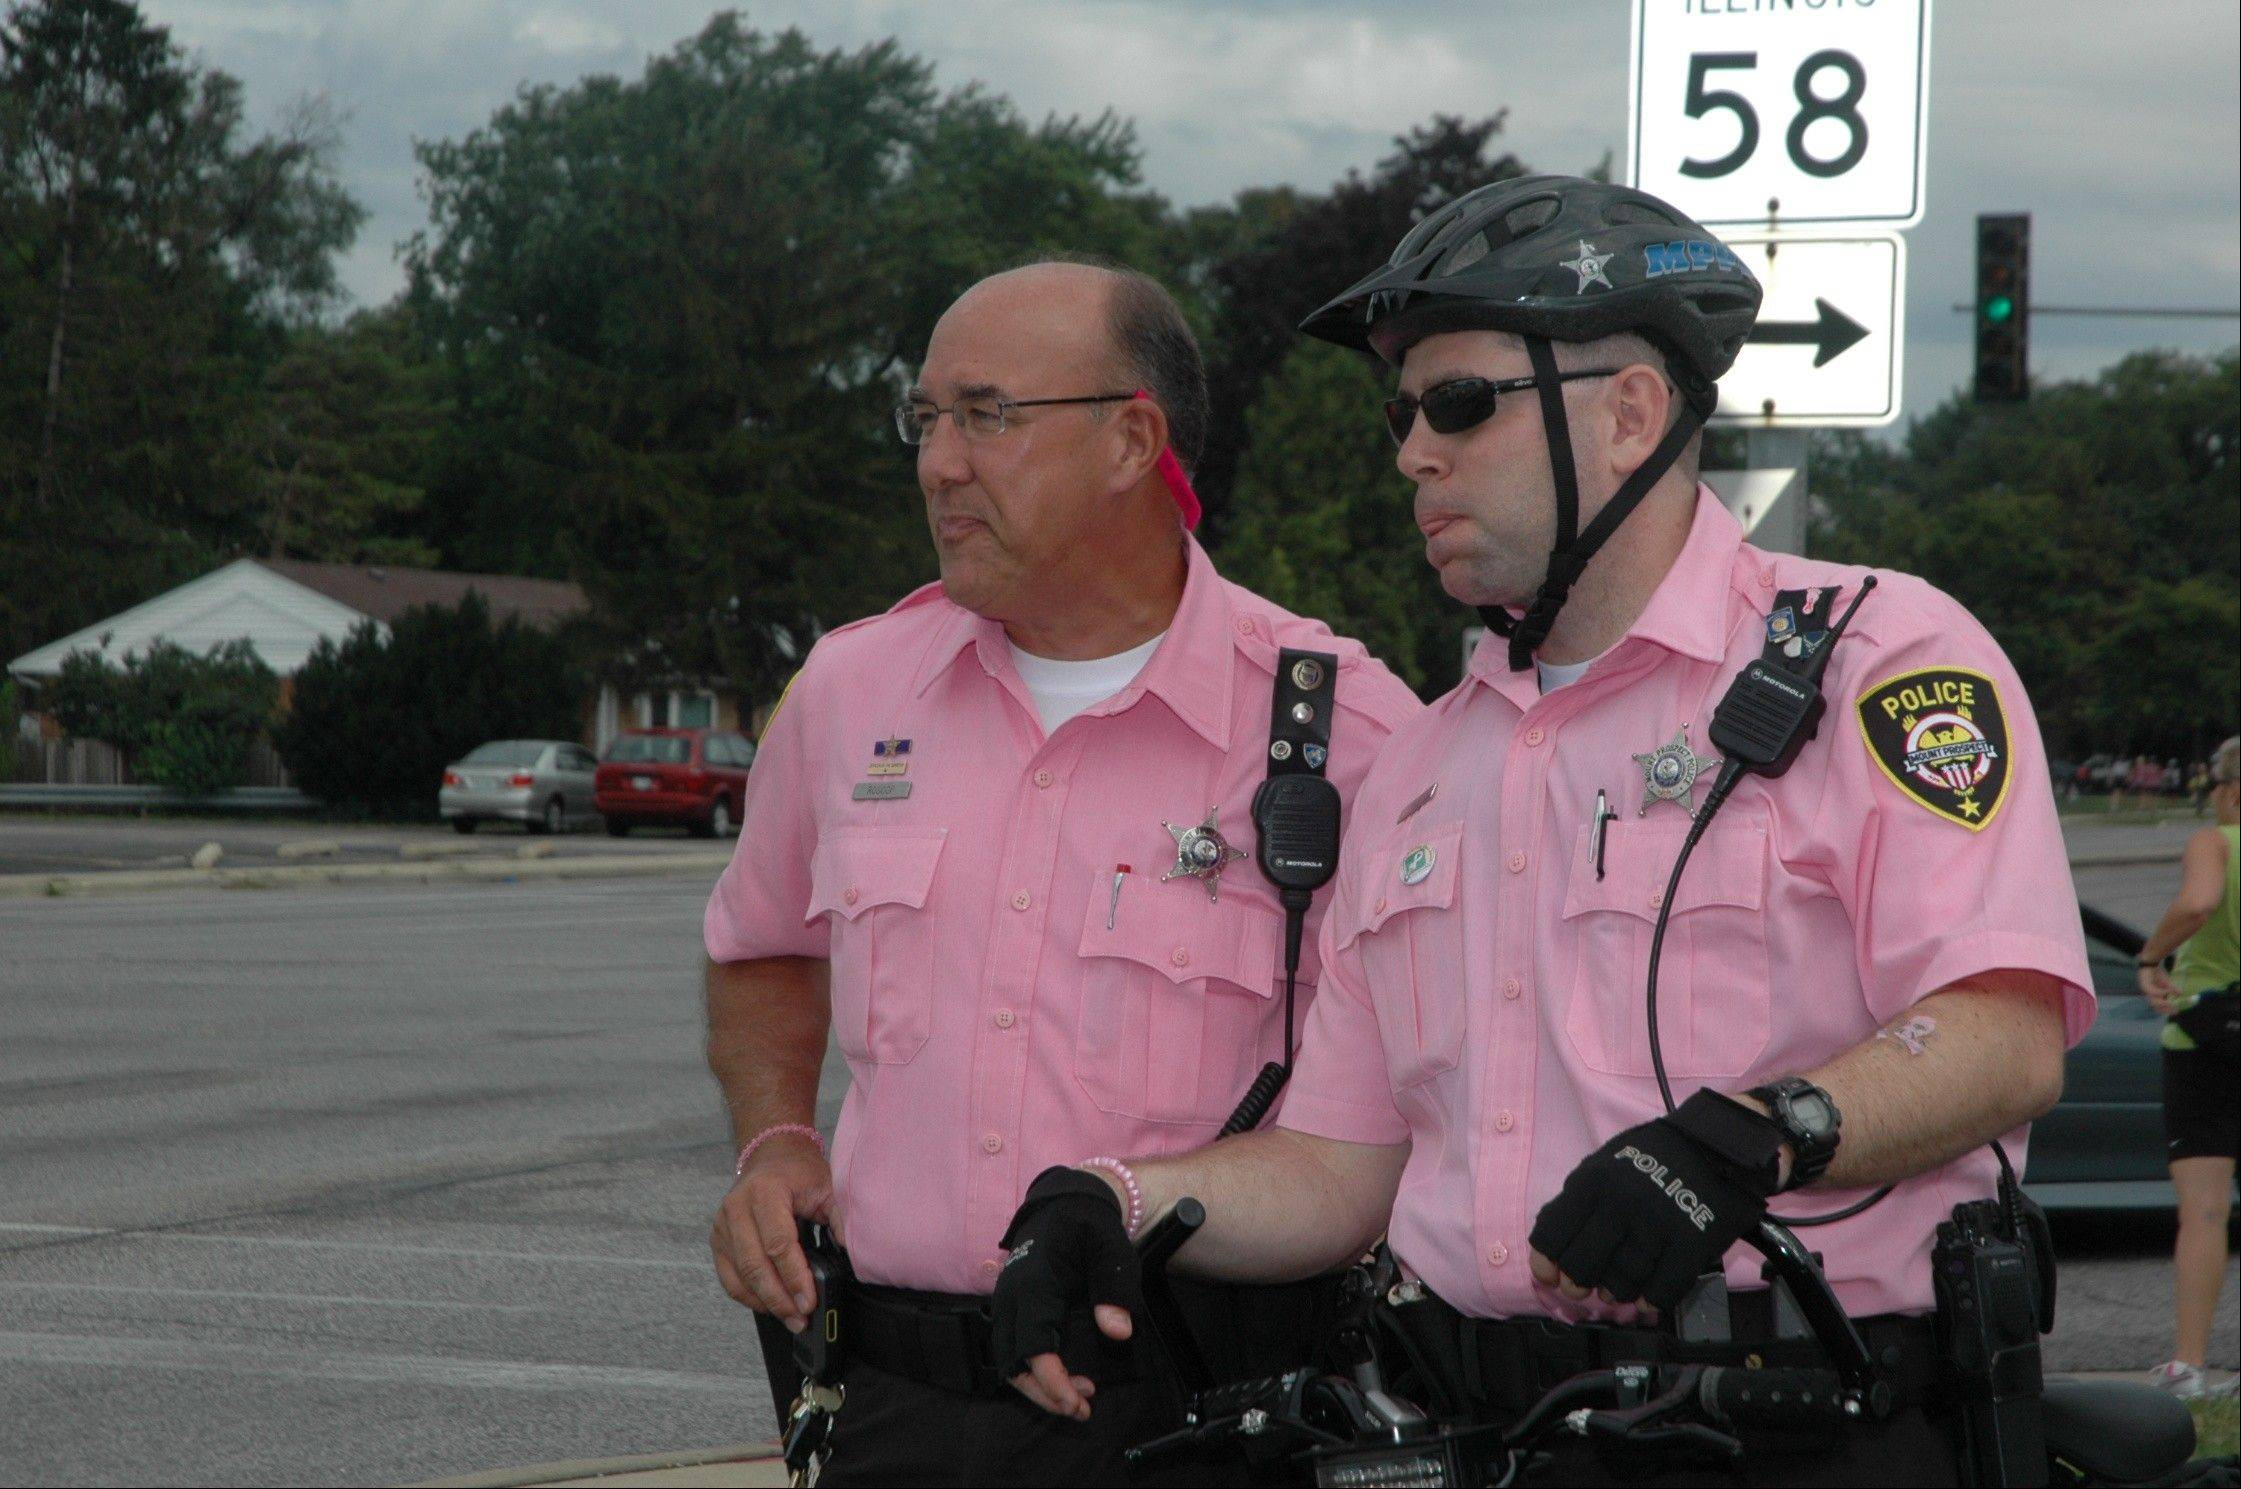 Mount Prospect police officers Bill Roscop, left, and Frank Raus watch over the 2008 Susan G. Komen 3-Day Walk as it comes through Mount Prospect.